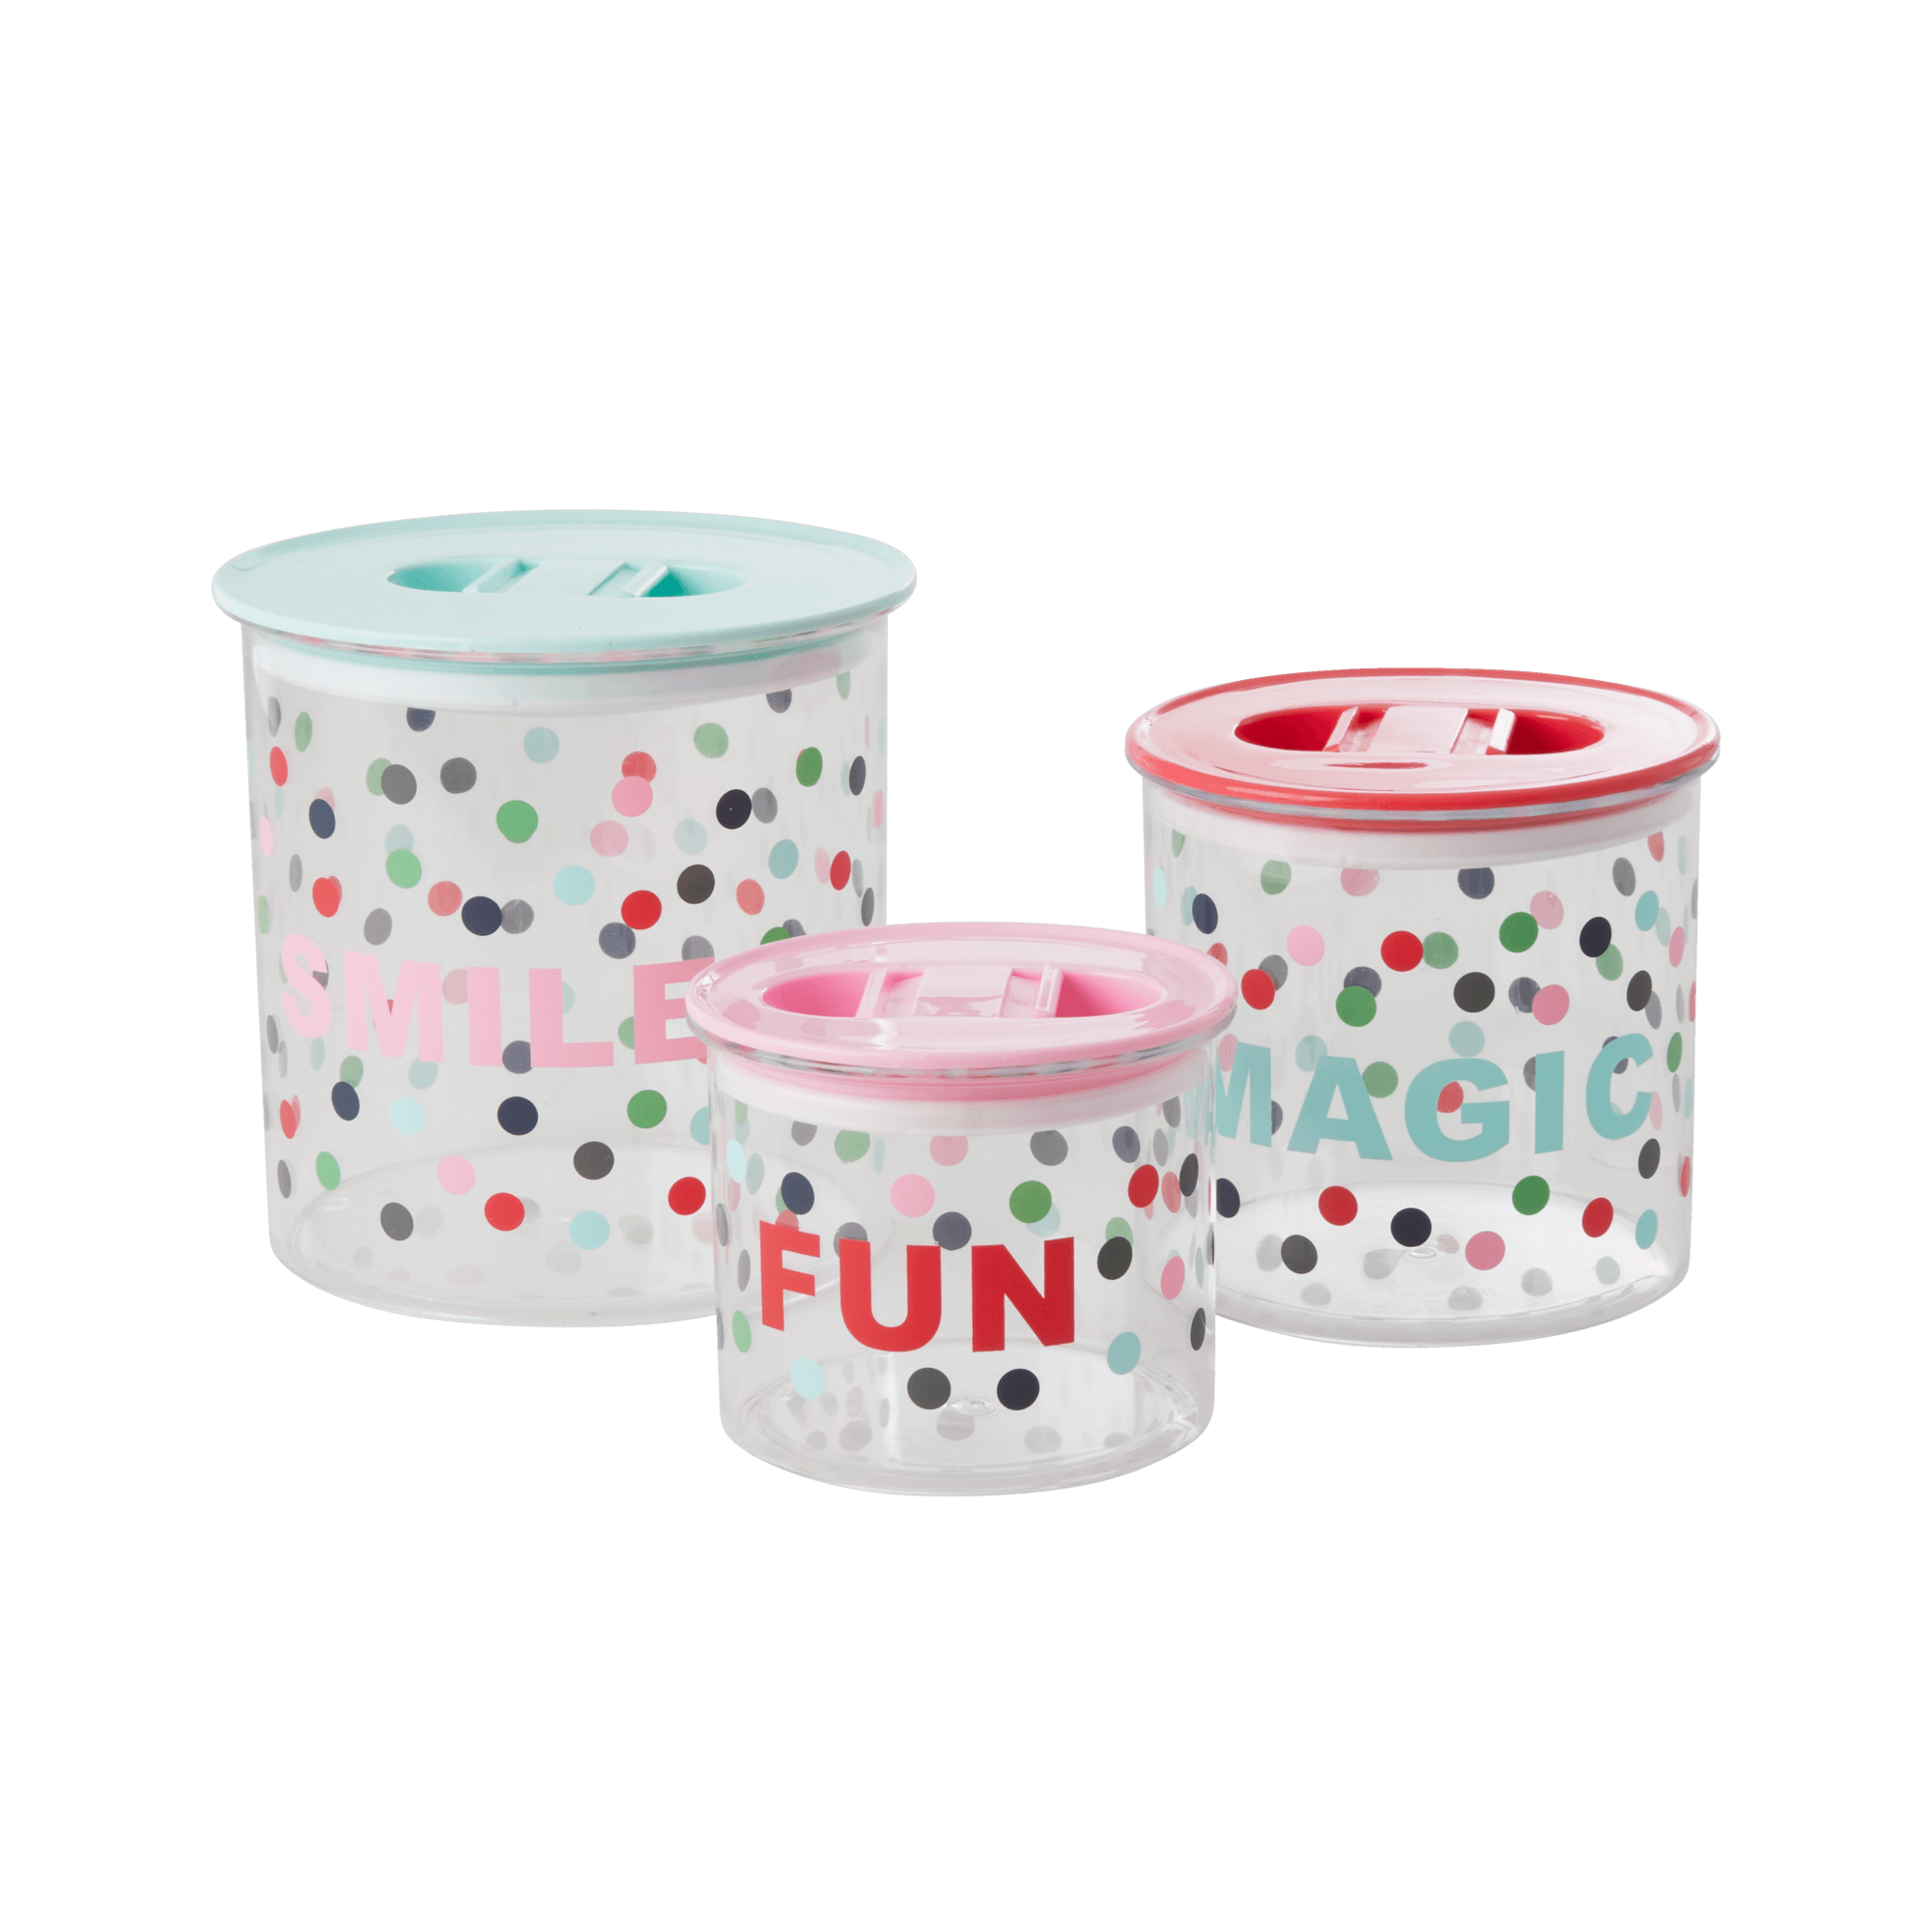 Rice - Food Storage Boxes 3 Pcs. w. Lid - Believe in Red Lipstick Dots Print